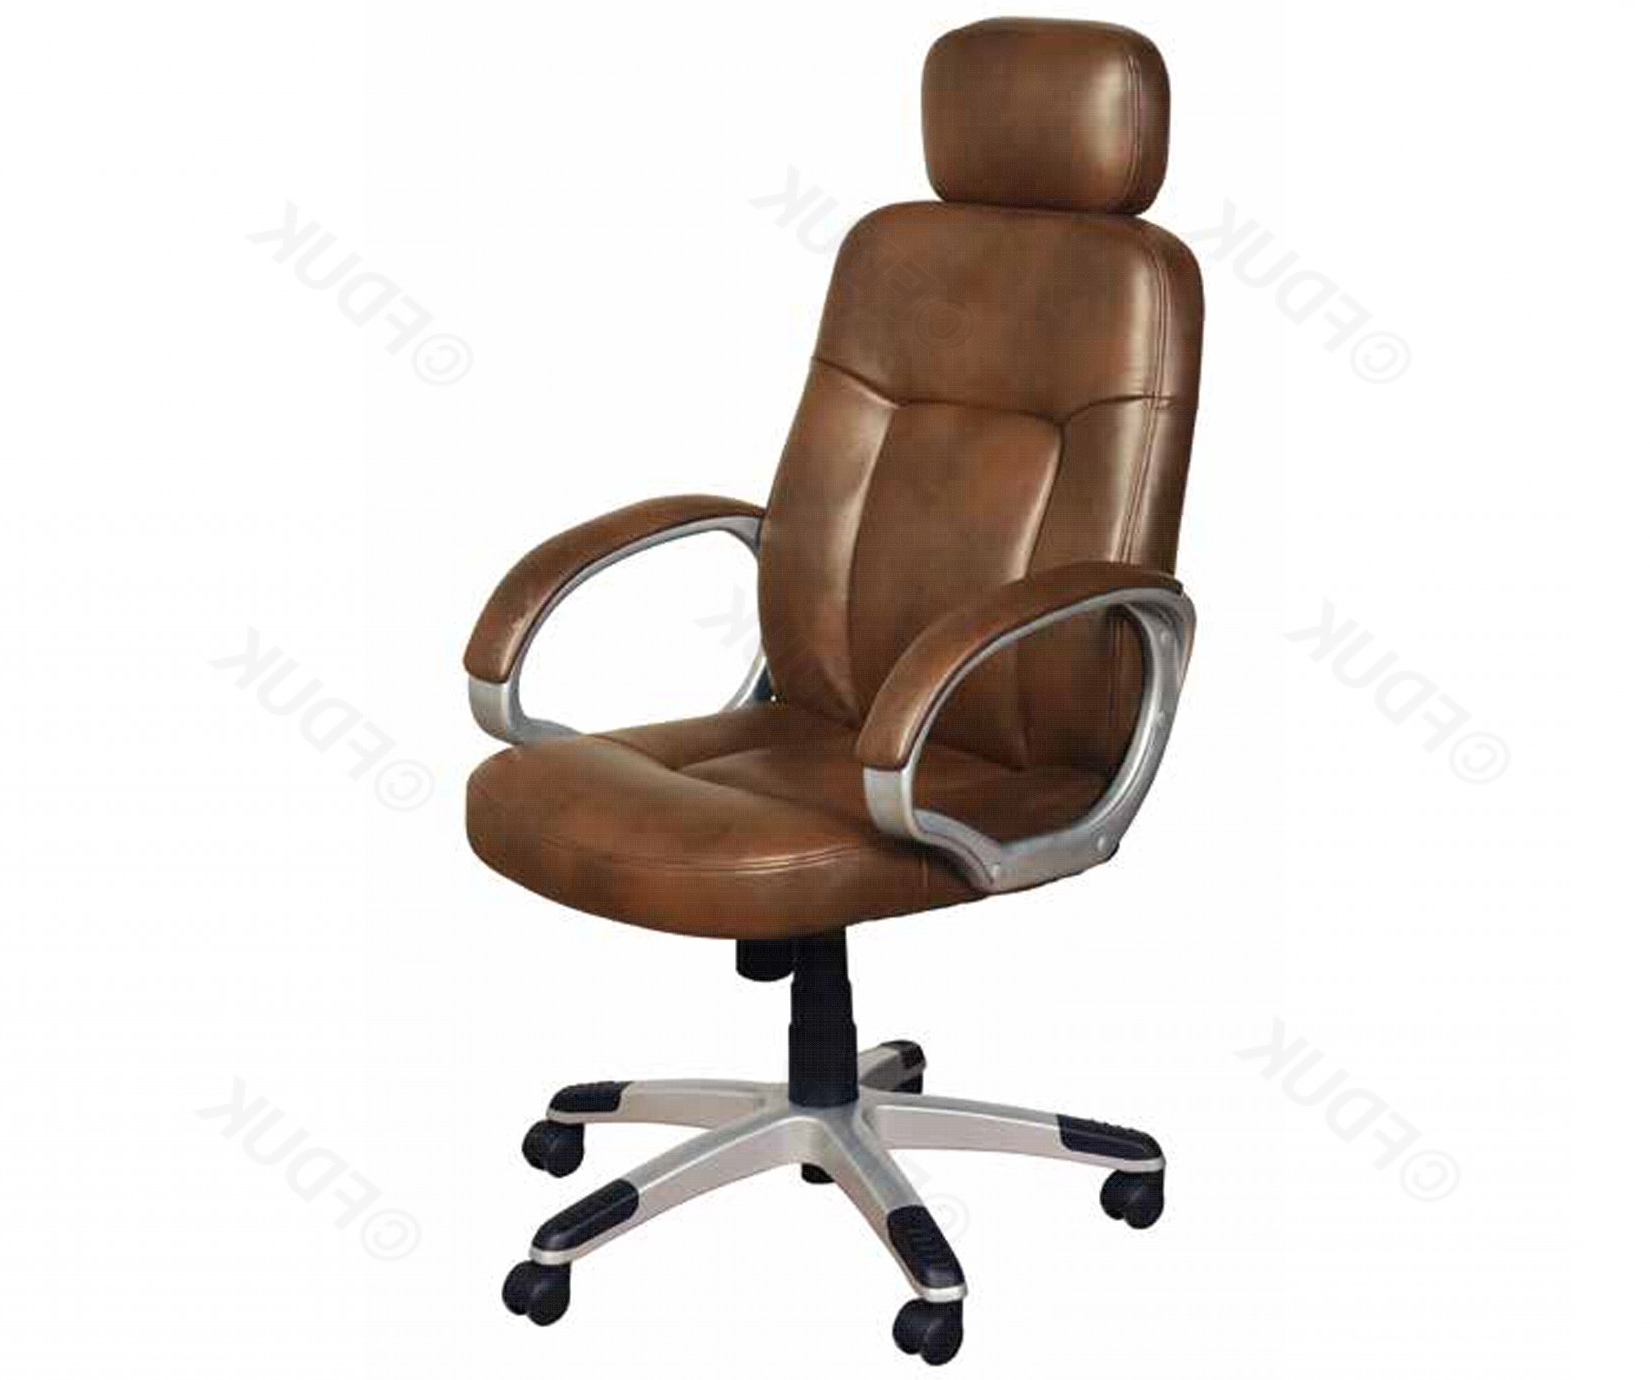 Light Beige Microfiber Executive Office Chairs Regarding Well Known Lovely Tan Office Chair (14 Photos) (View 13 of 20)